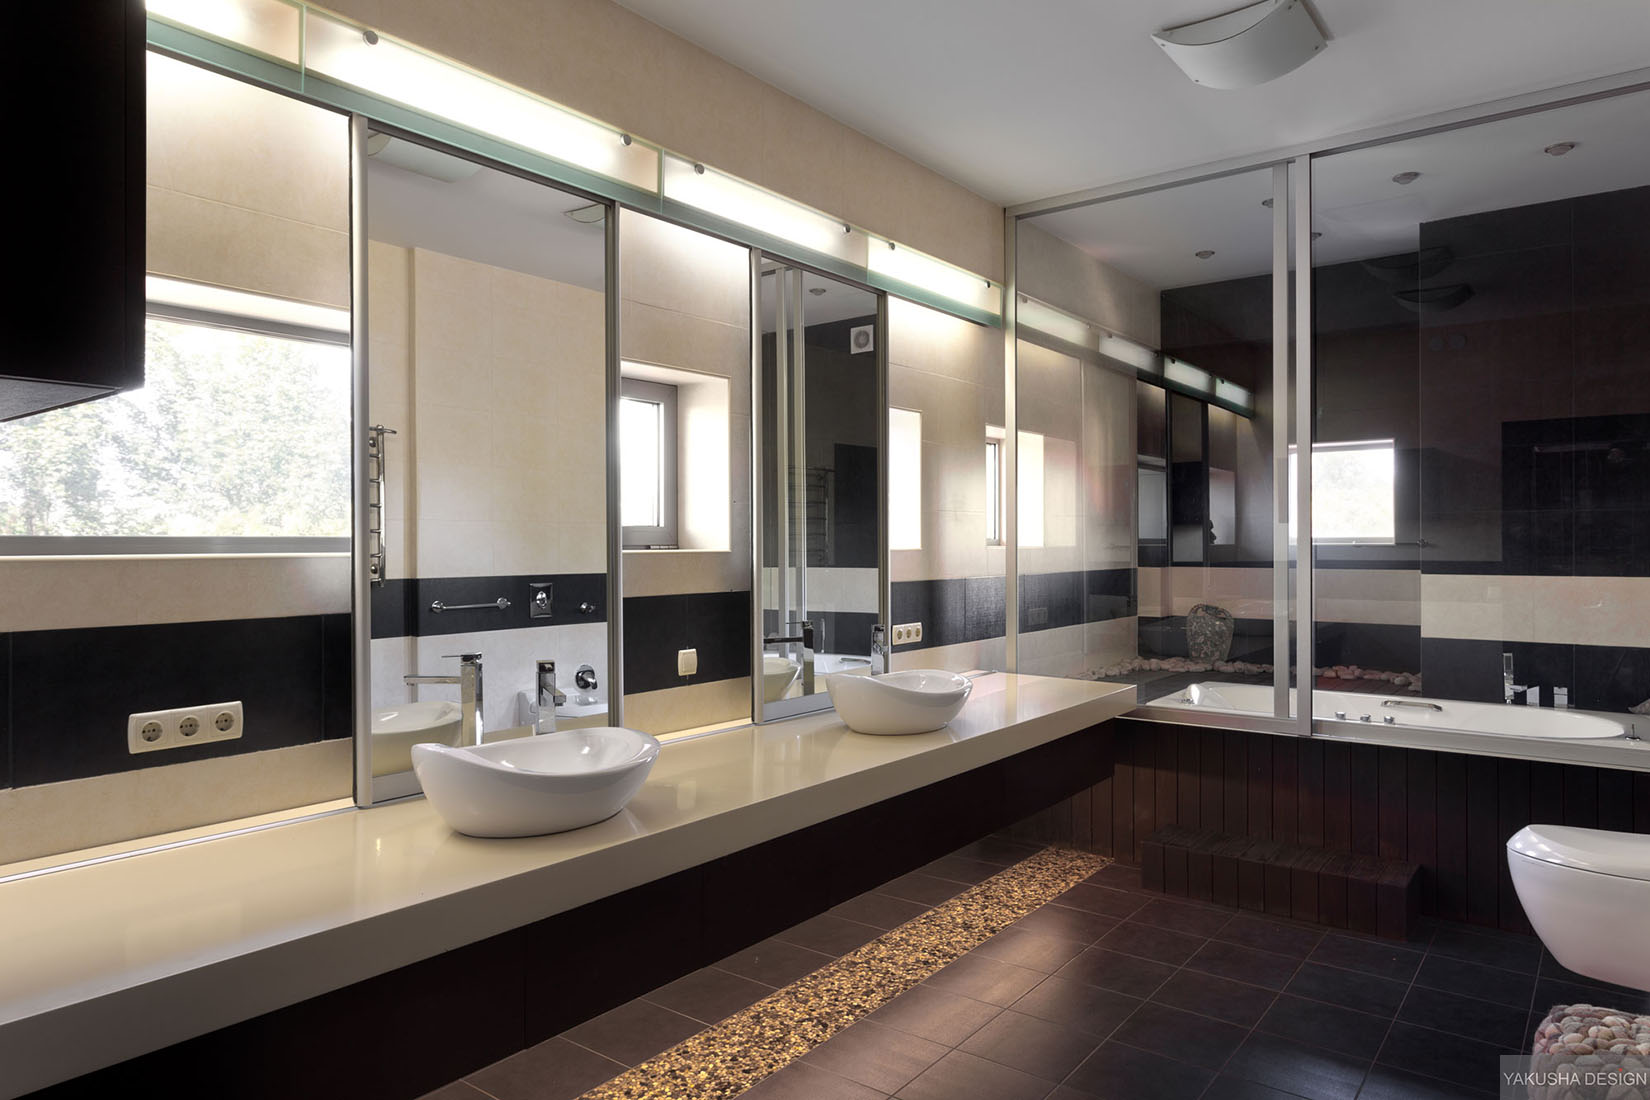 His and hers twin sinks in modern mirrored bathroom with Modern design of bathroom